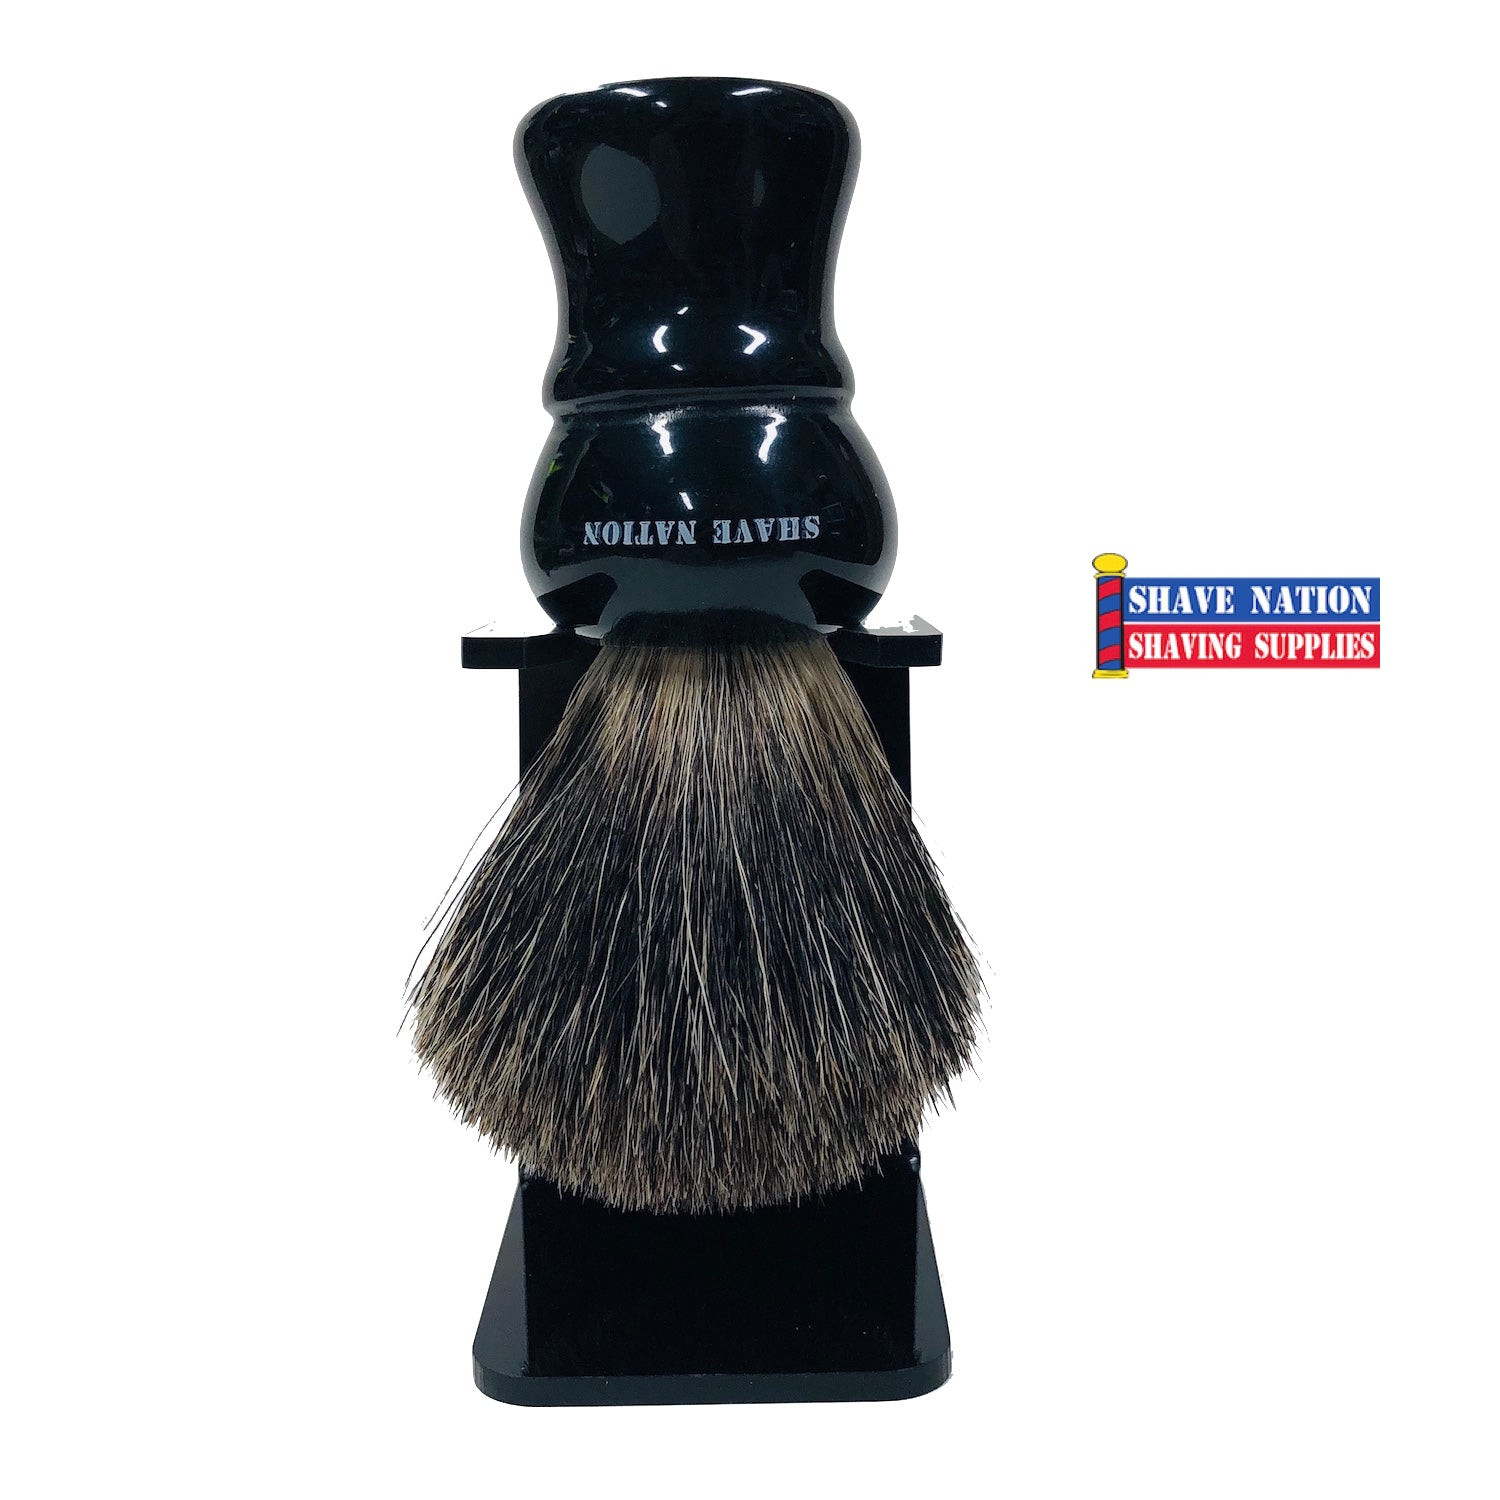 Shave Nation Ebony Handle Mixed Badger Brush